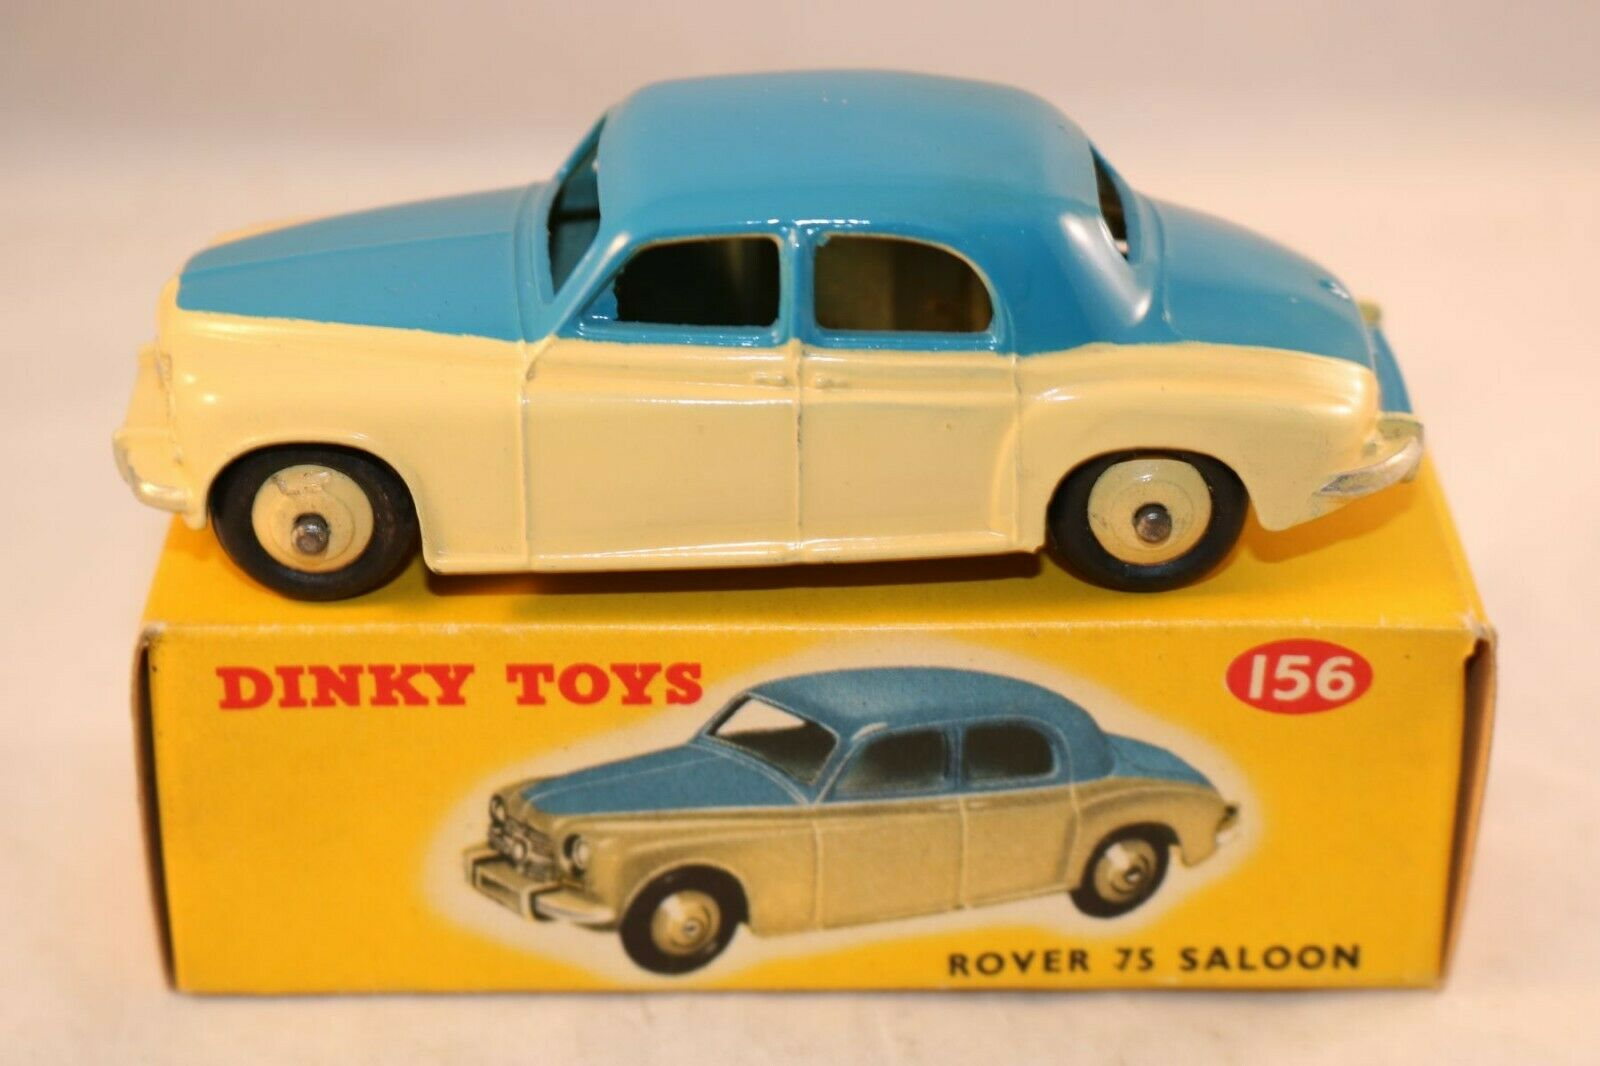 Dinky Toys 156 Rover 75 saloon 2 tone blueee and cream very near mint in box